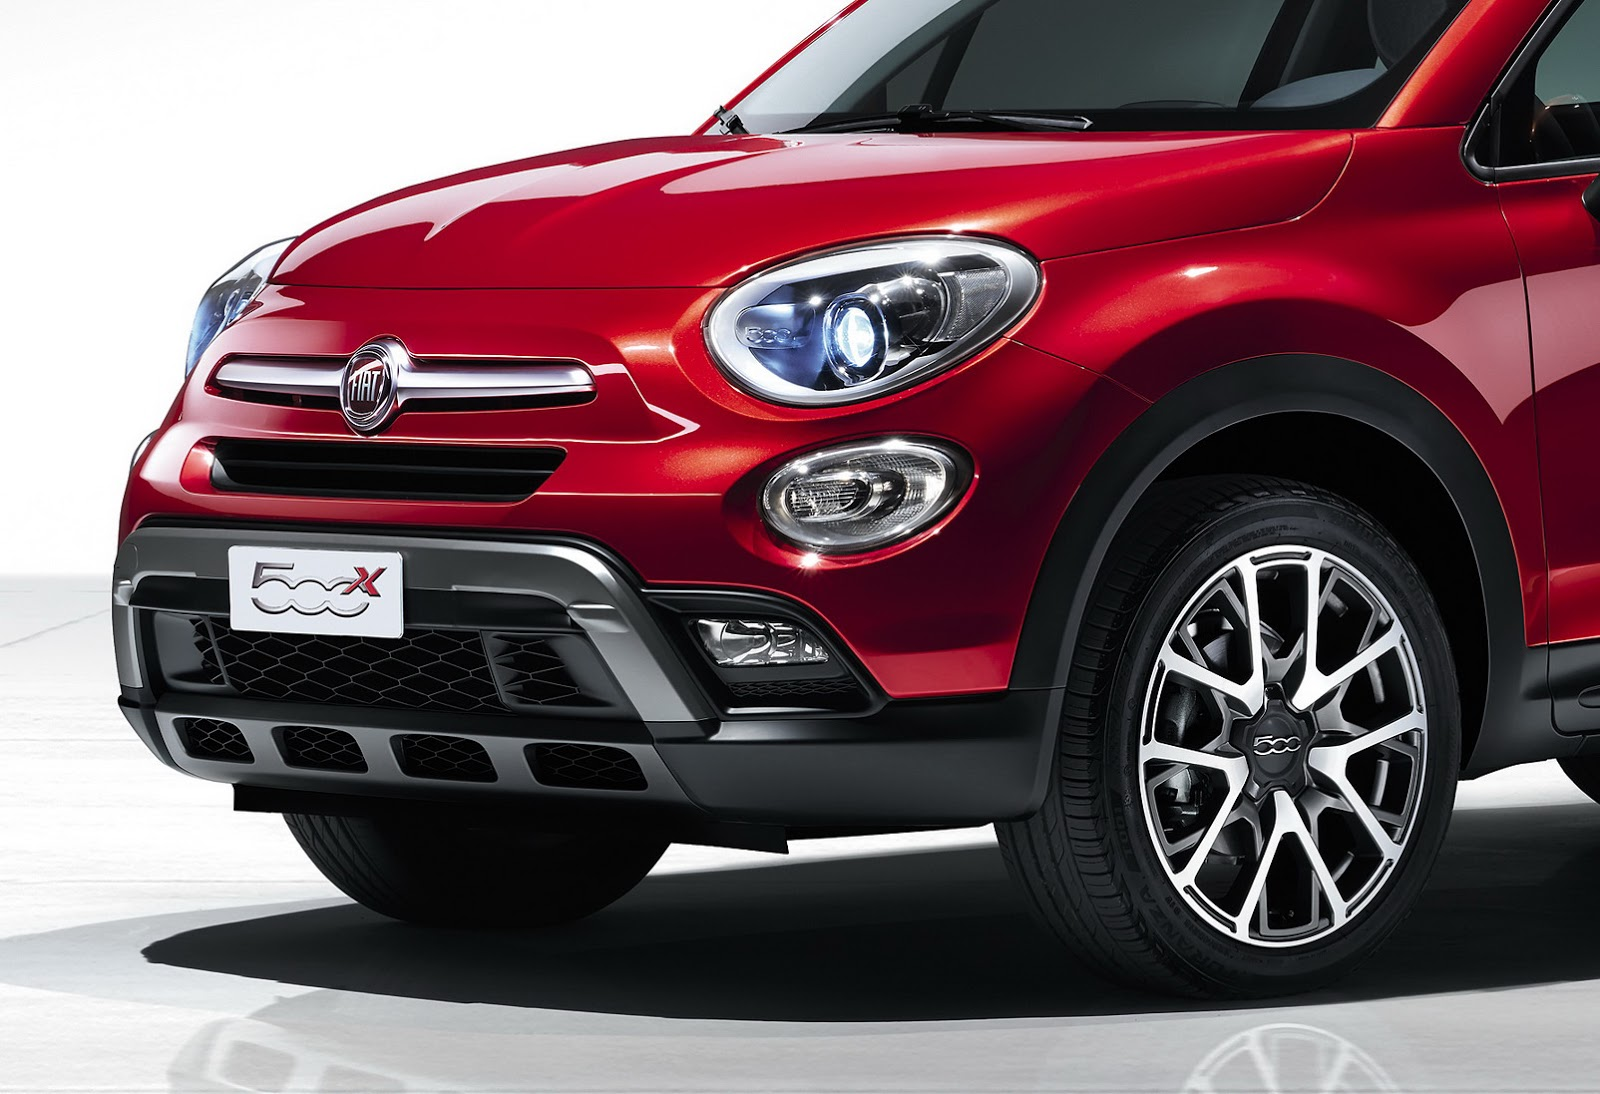 fiat 39 s 500x small crossover revealed will be sold in u s new photos carscoops. Black Bedroom Furniture Sets. Home Design Ideas